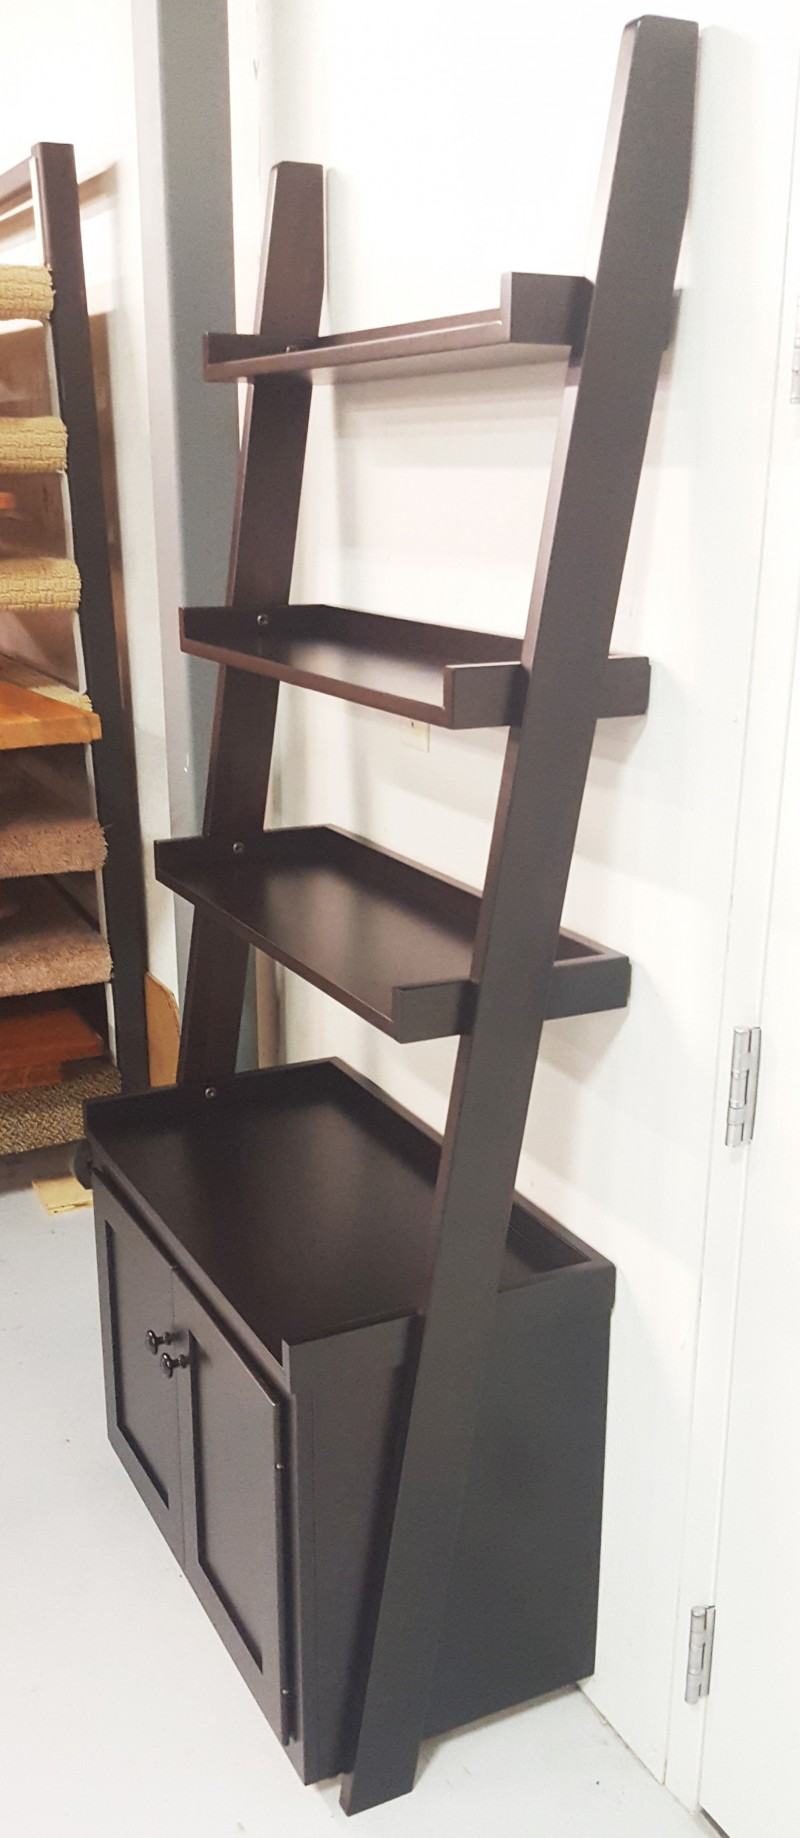 solid wood toy kitchen make your own island ladder shelf wall with storage | amish made ...